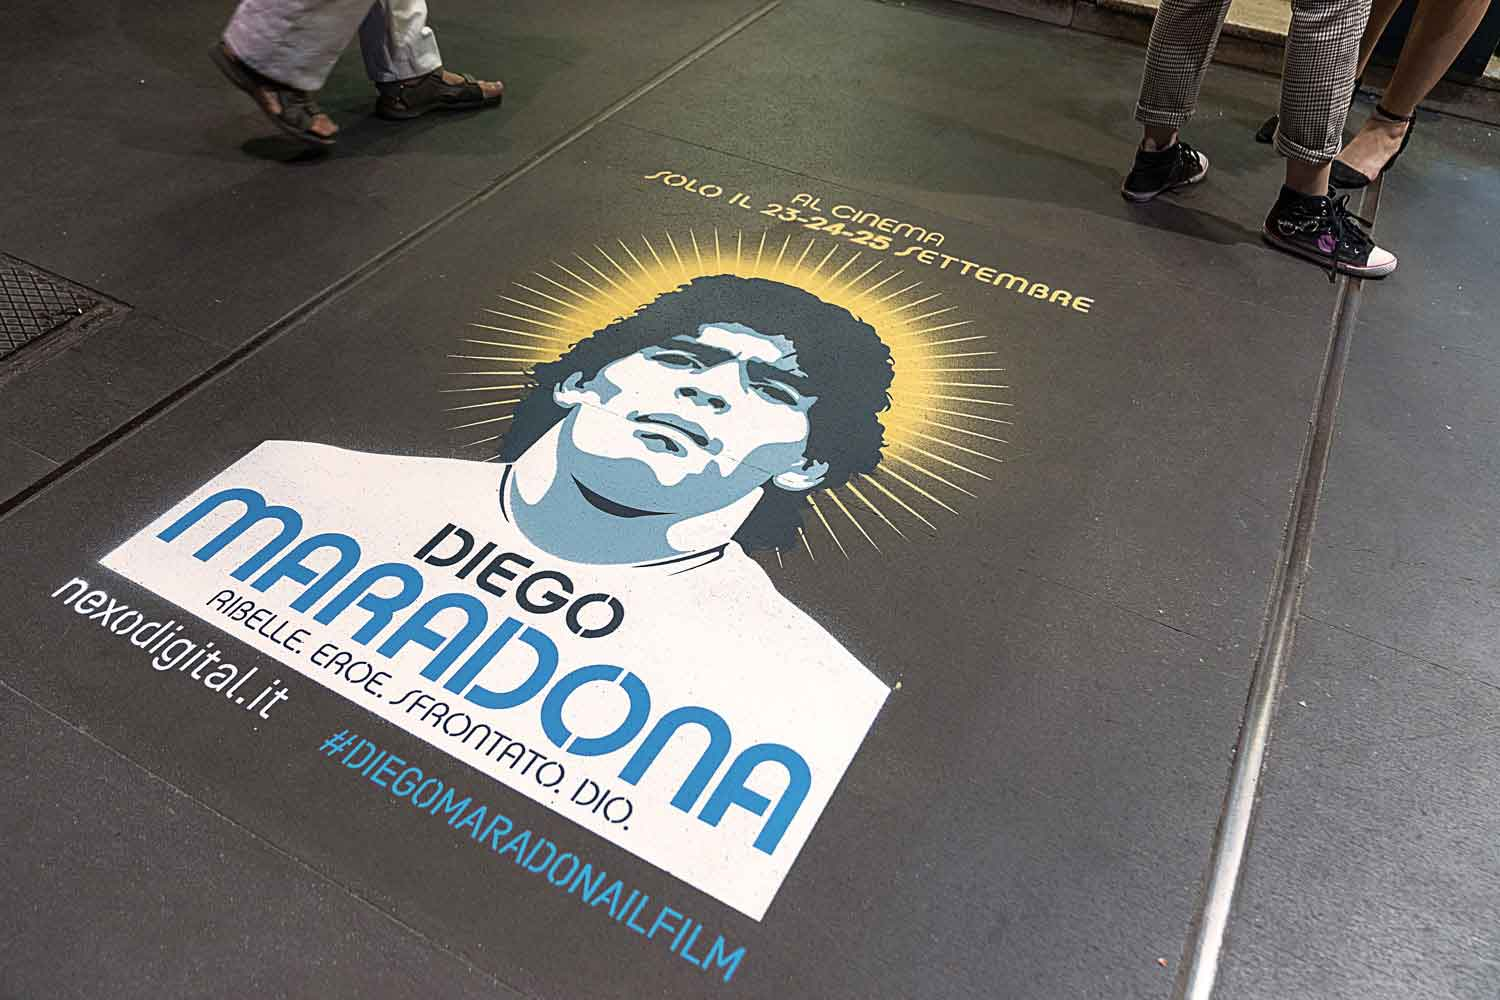 ambienti marketing nexo maradona